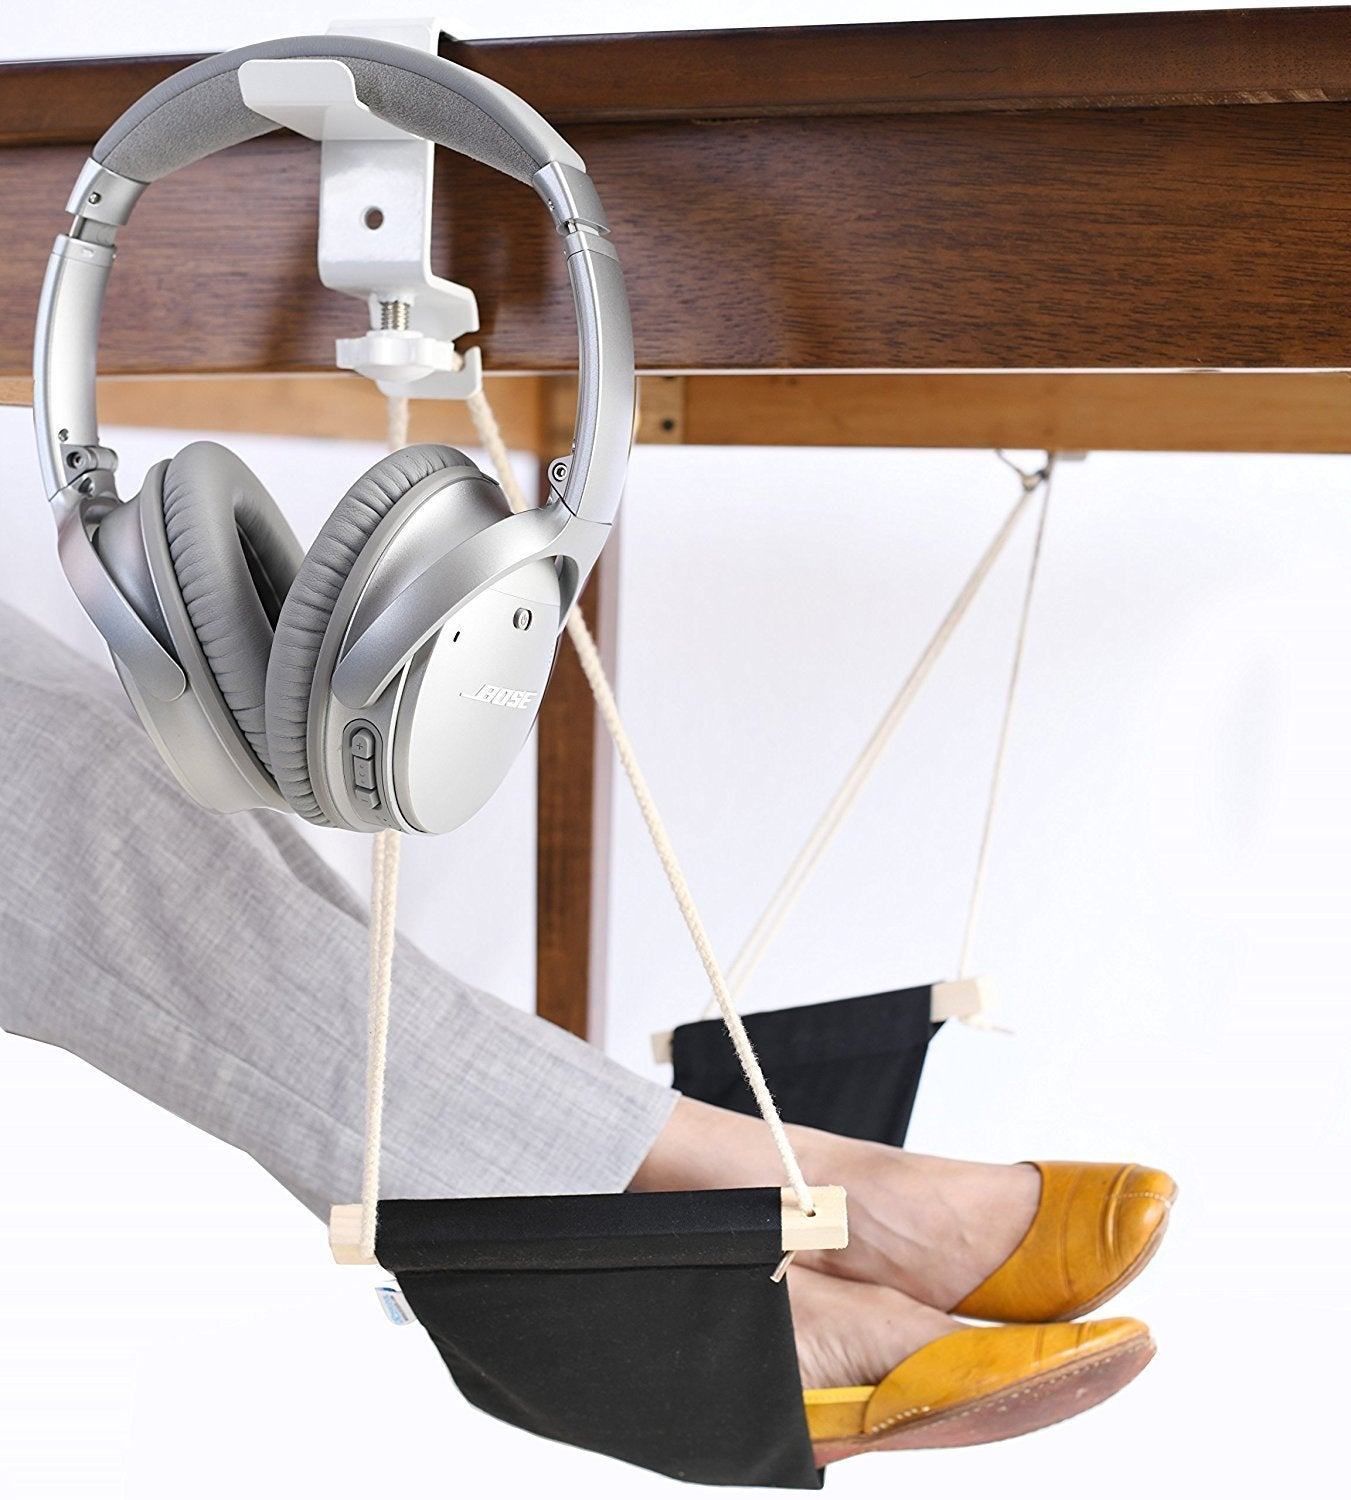 Foot Hammock For Desk - oddgifts.com